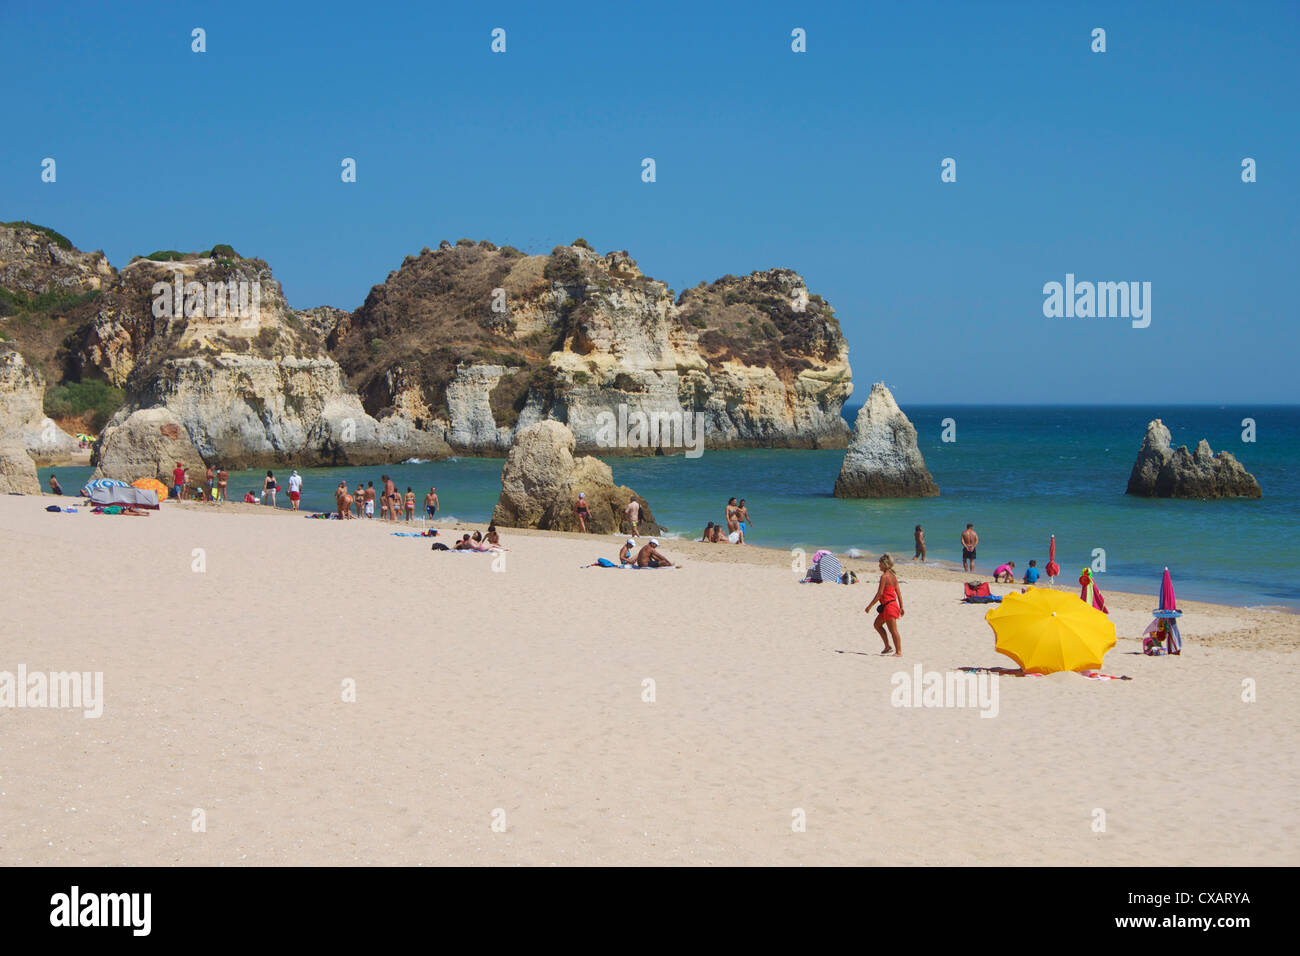 Praia Acessivel, Alvor, Algarve, Portugal, Europe - Stock Image